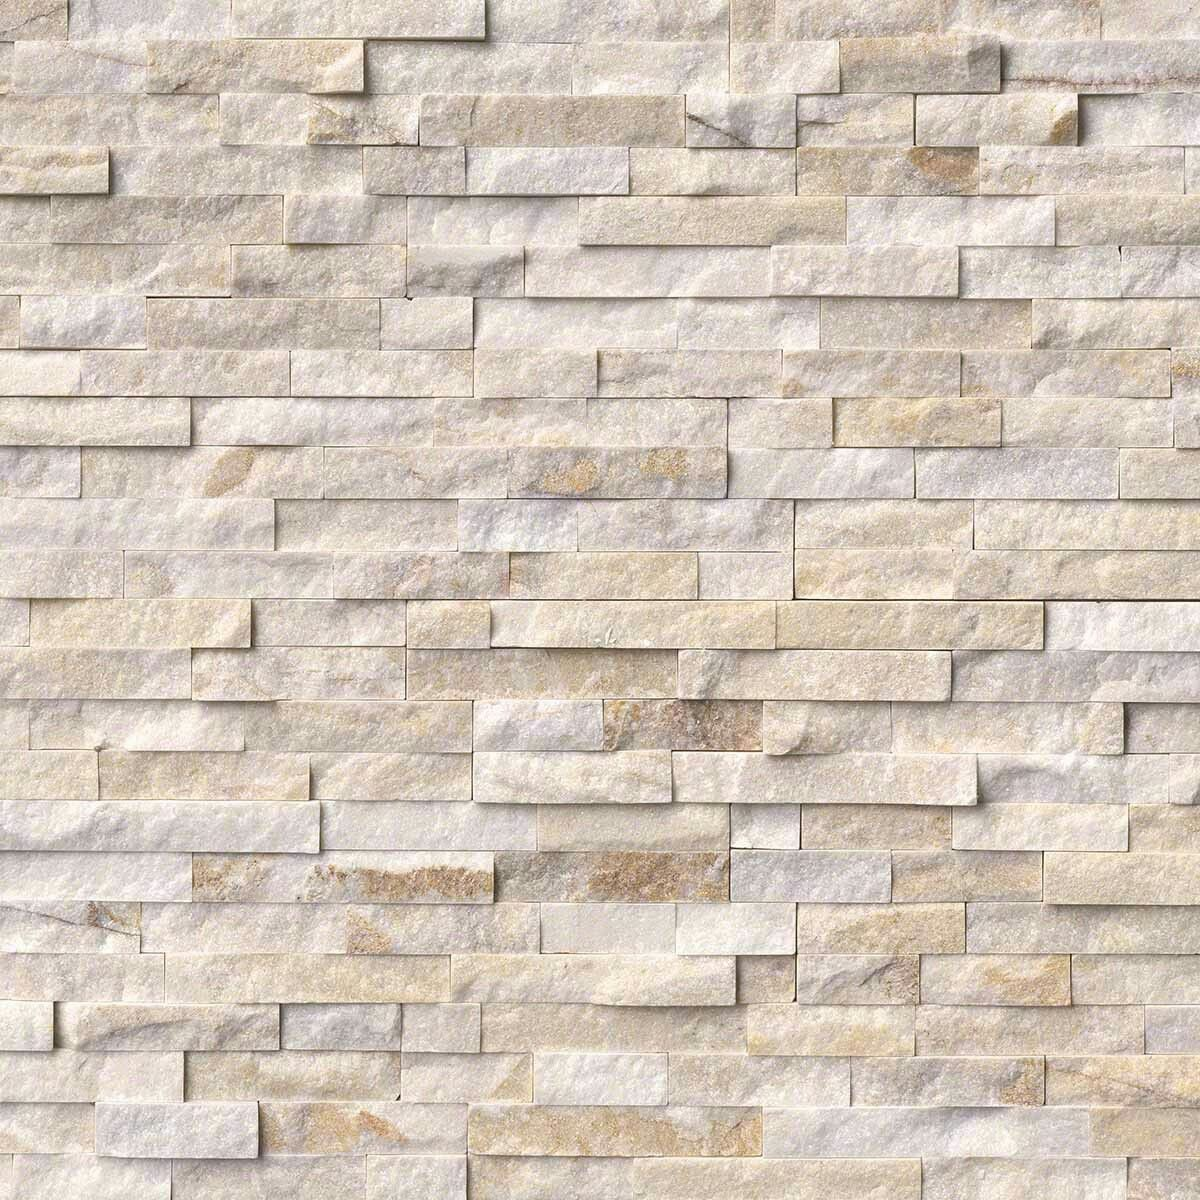 Msi Arctic Golden Stacked Stone Travertine Wall Tiles Stacked Stone Panels Marble Wall Tiles